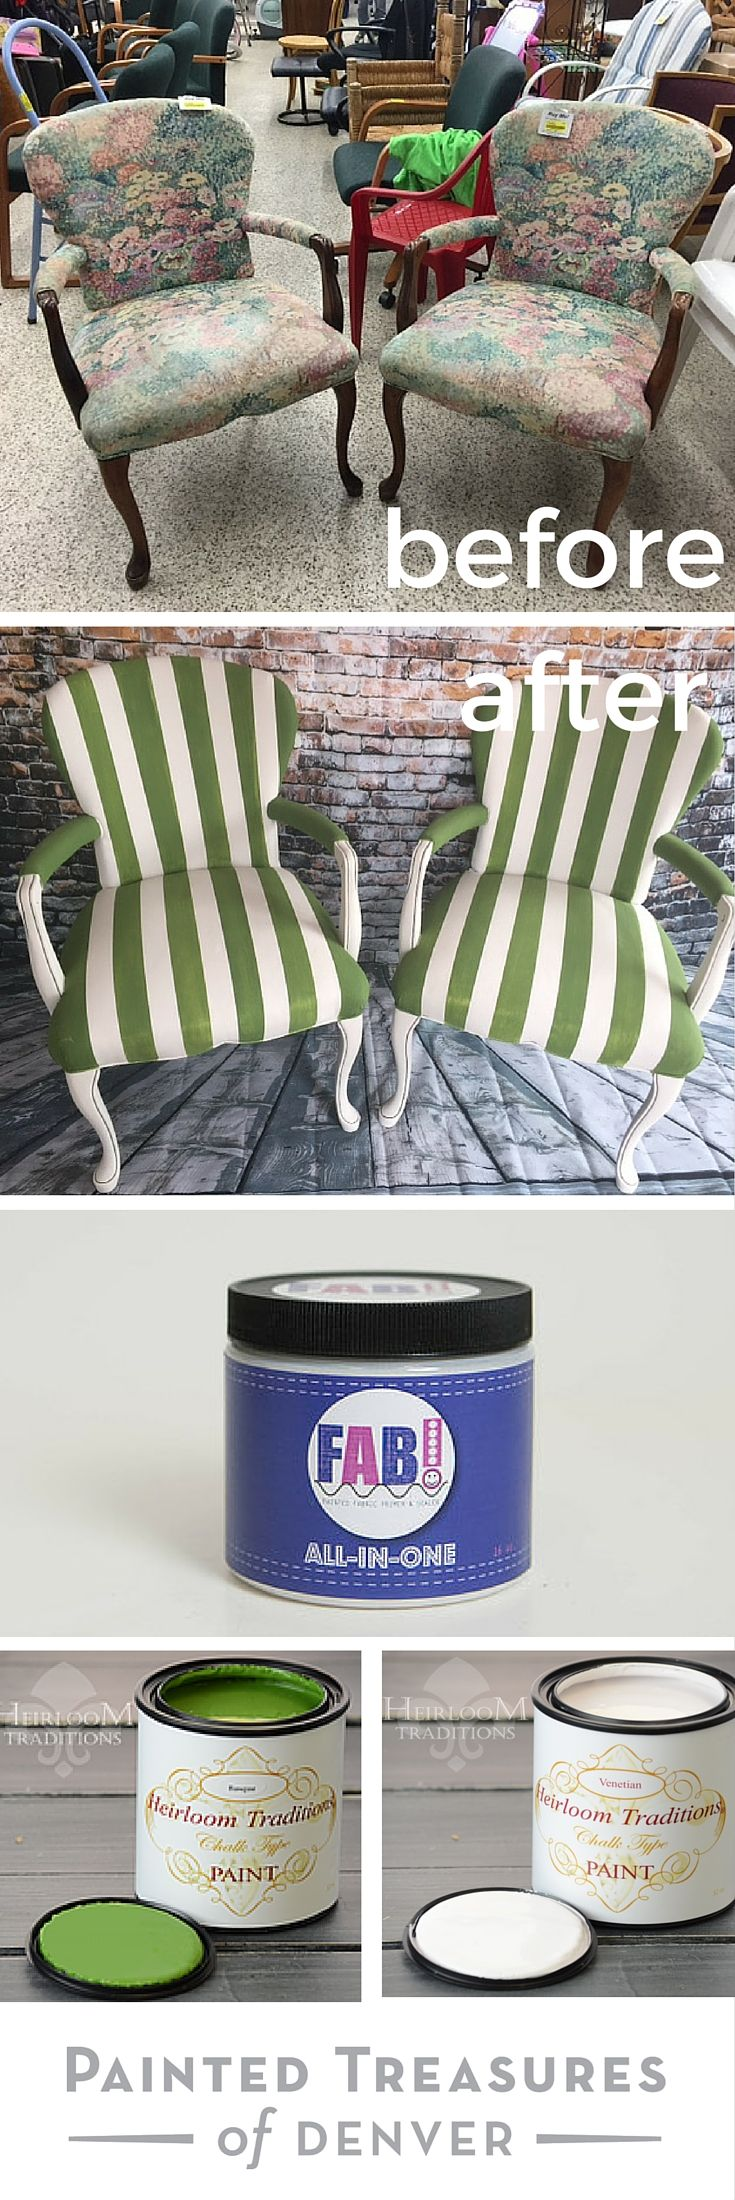 You Can Paint Fabric And Upholstery Using FAB! Check Out